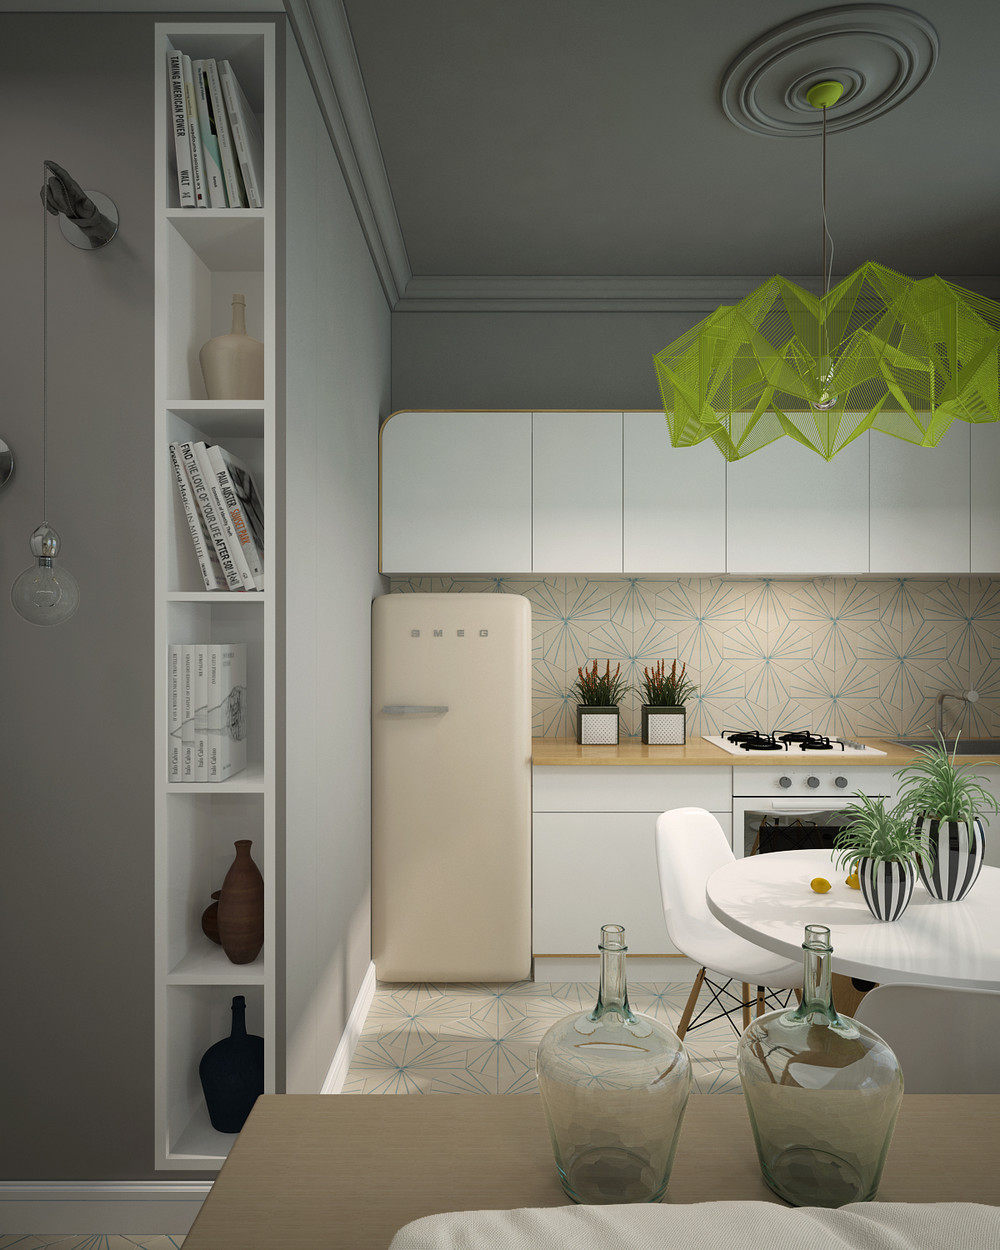 Bright Kitchen Interior Natural Nuance To Apply This Small Apartment Design With Simple And Modern Interior